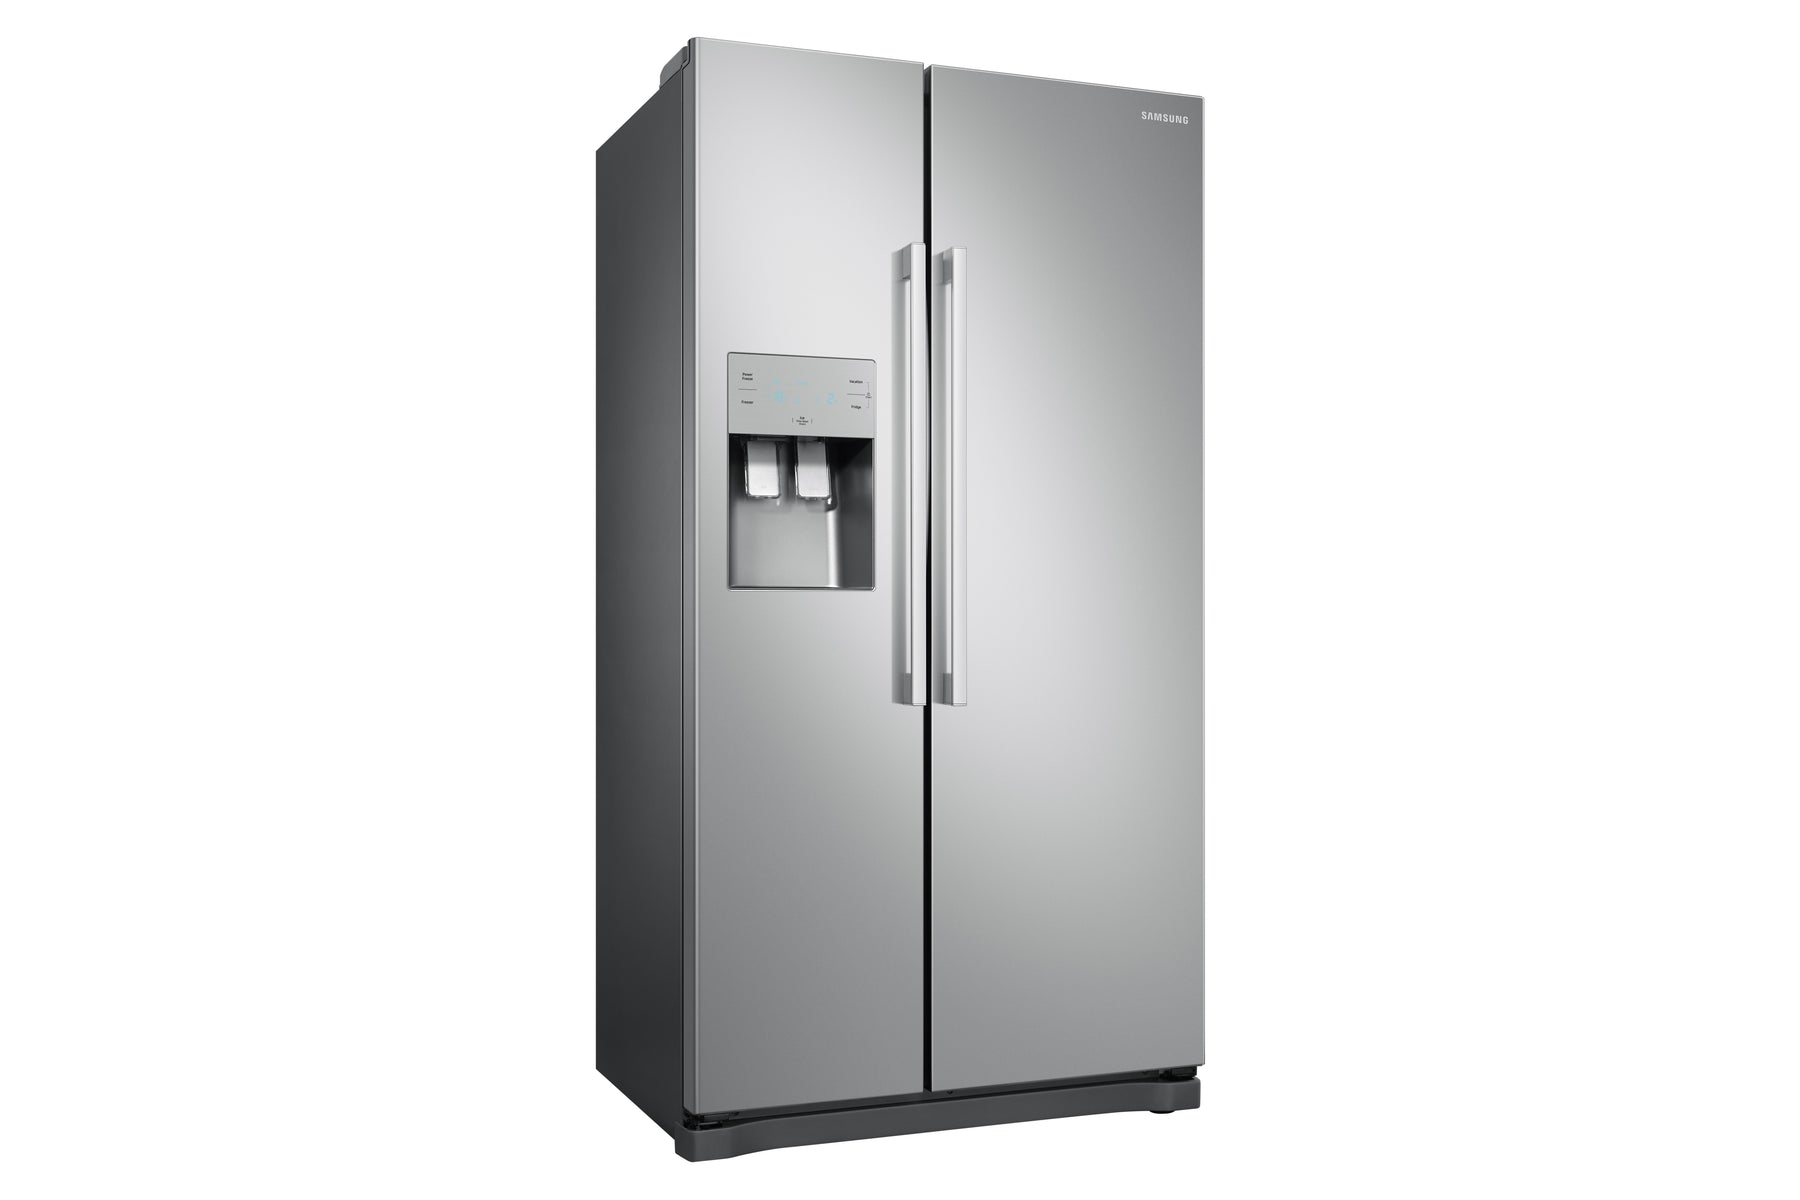 Samsung RS50N3513SA American Style Frost Free Fridge Freezer with Plumbed Water, Ice Dispenser - Graphite